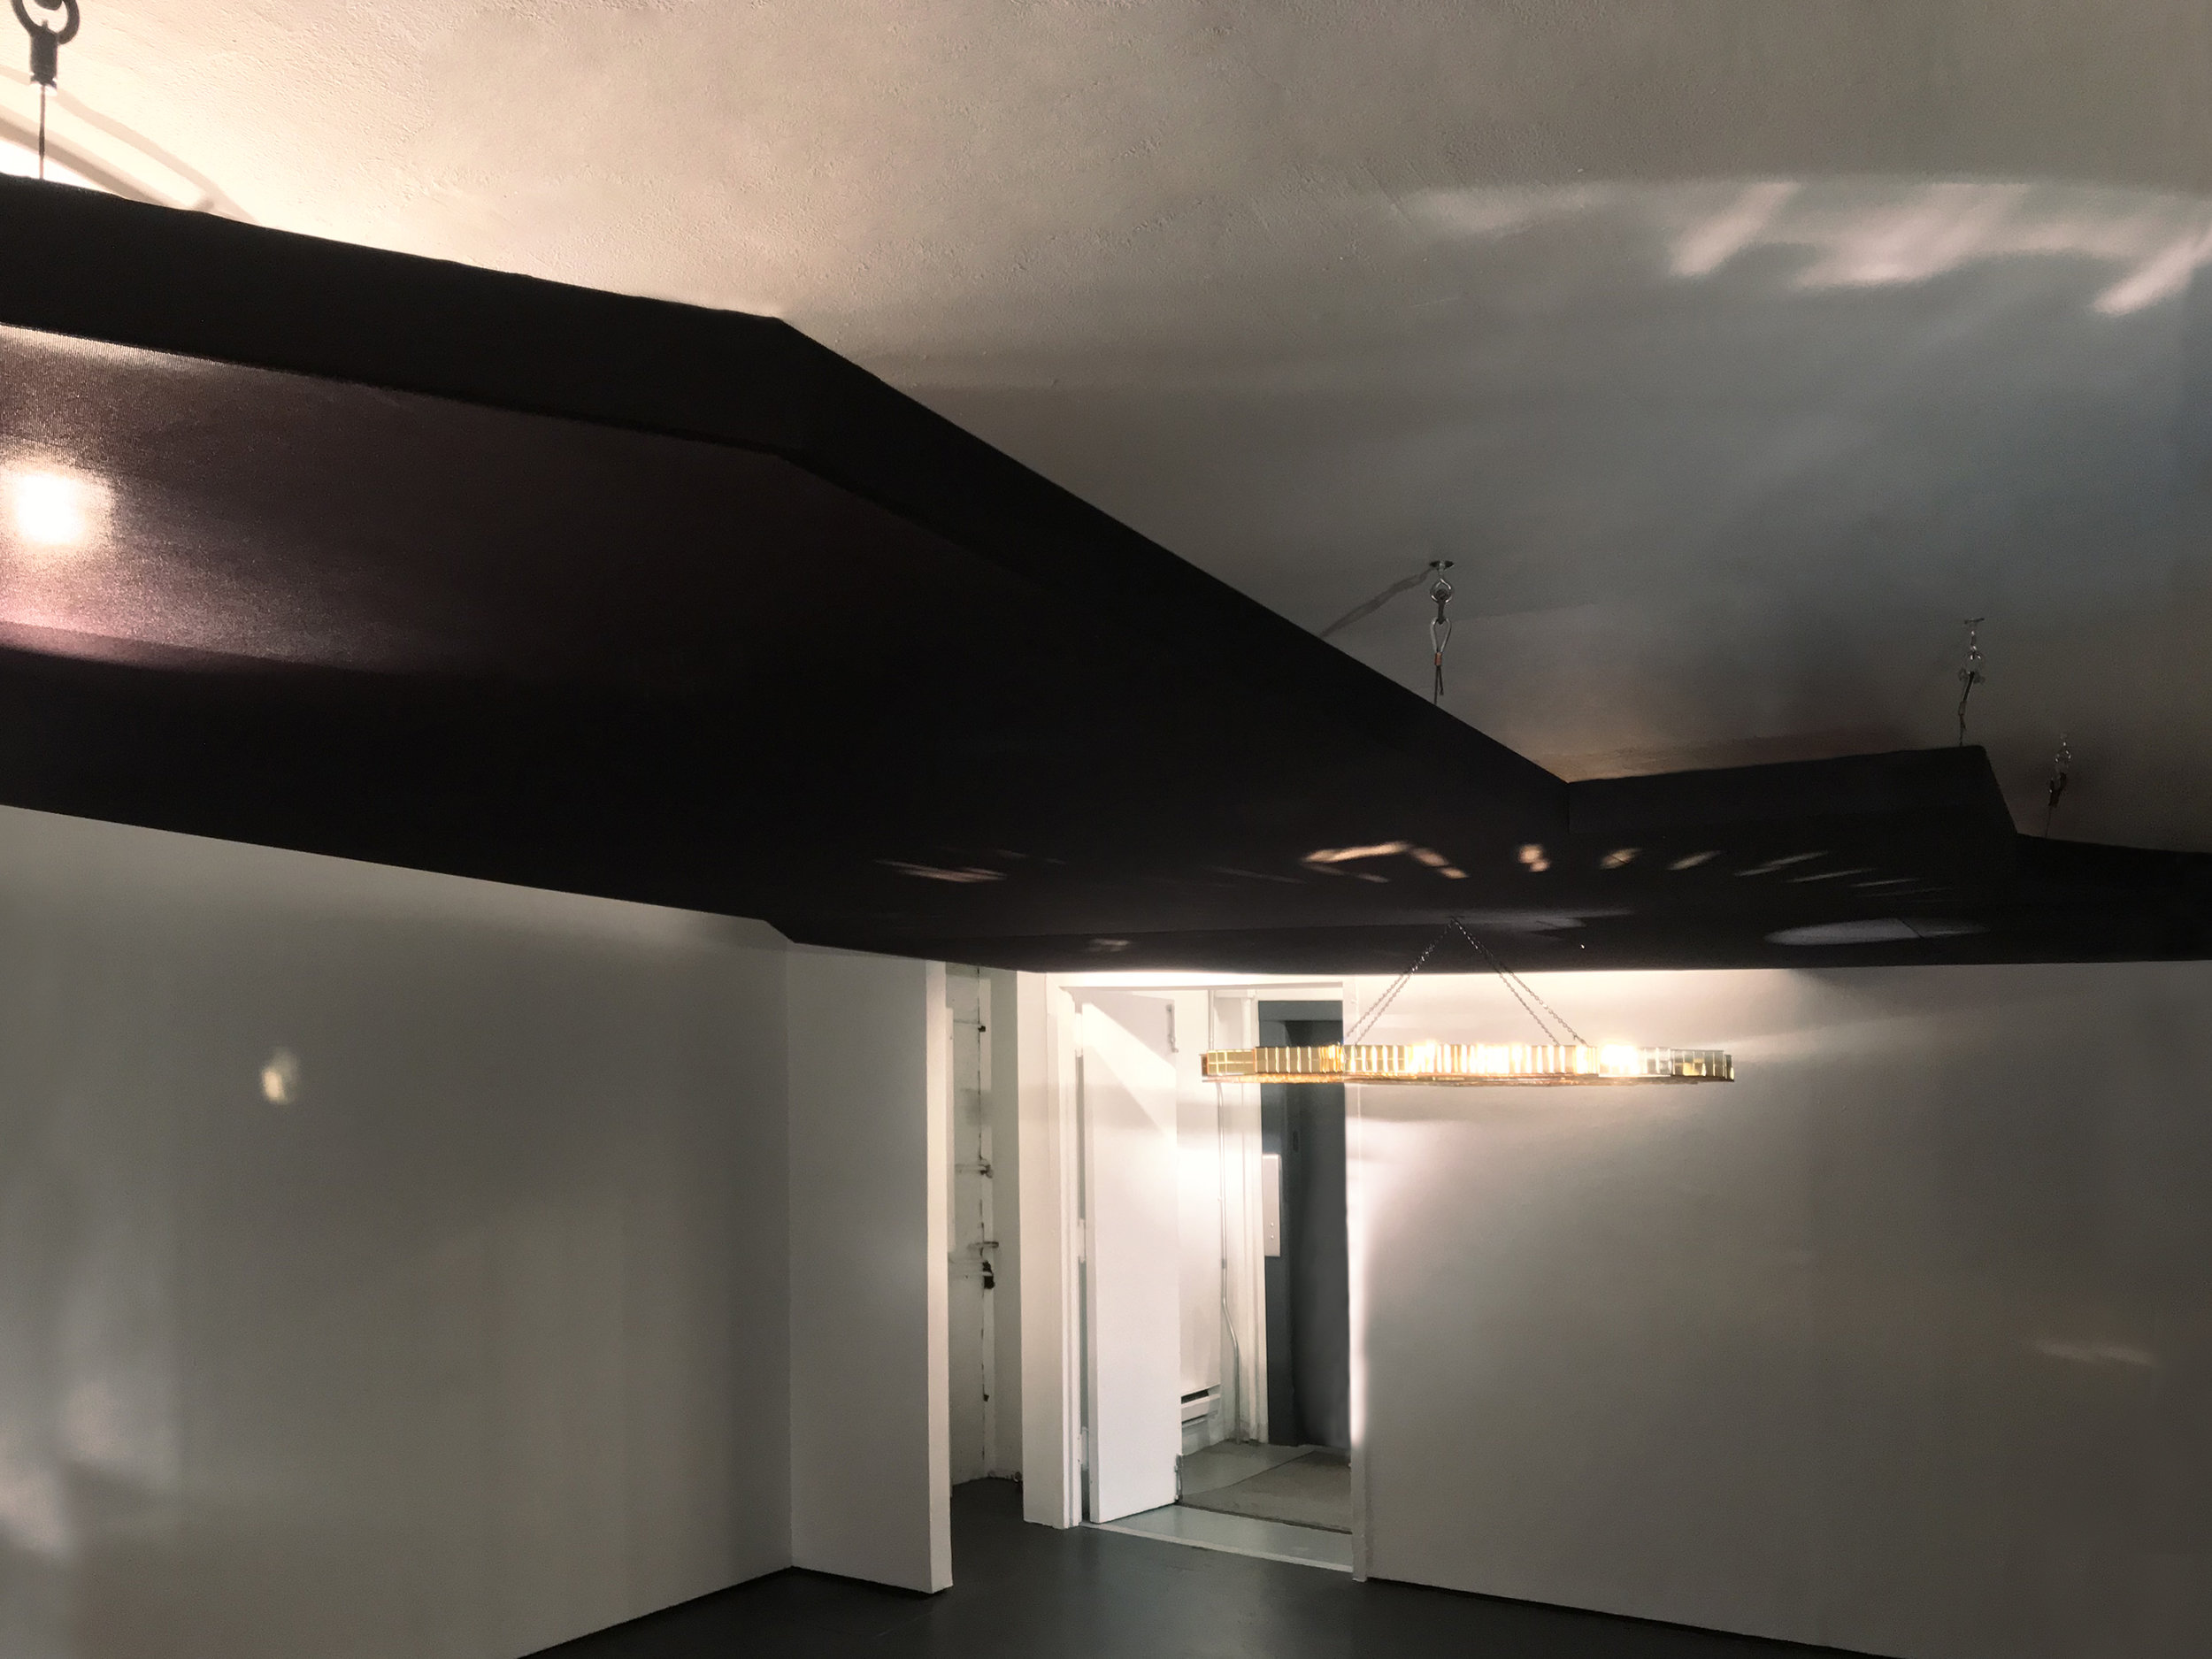 [Feat. ], On Whiteness , at The Kitchen, a lowered ceiling made from acoustic speaker fabric and wood framing - a black and gold plexiglass chandelier that spins on a disco-motor, 2018